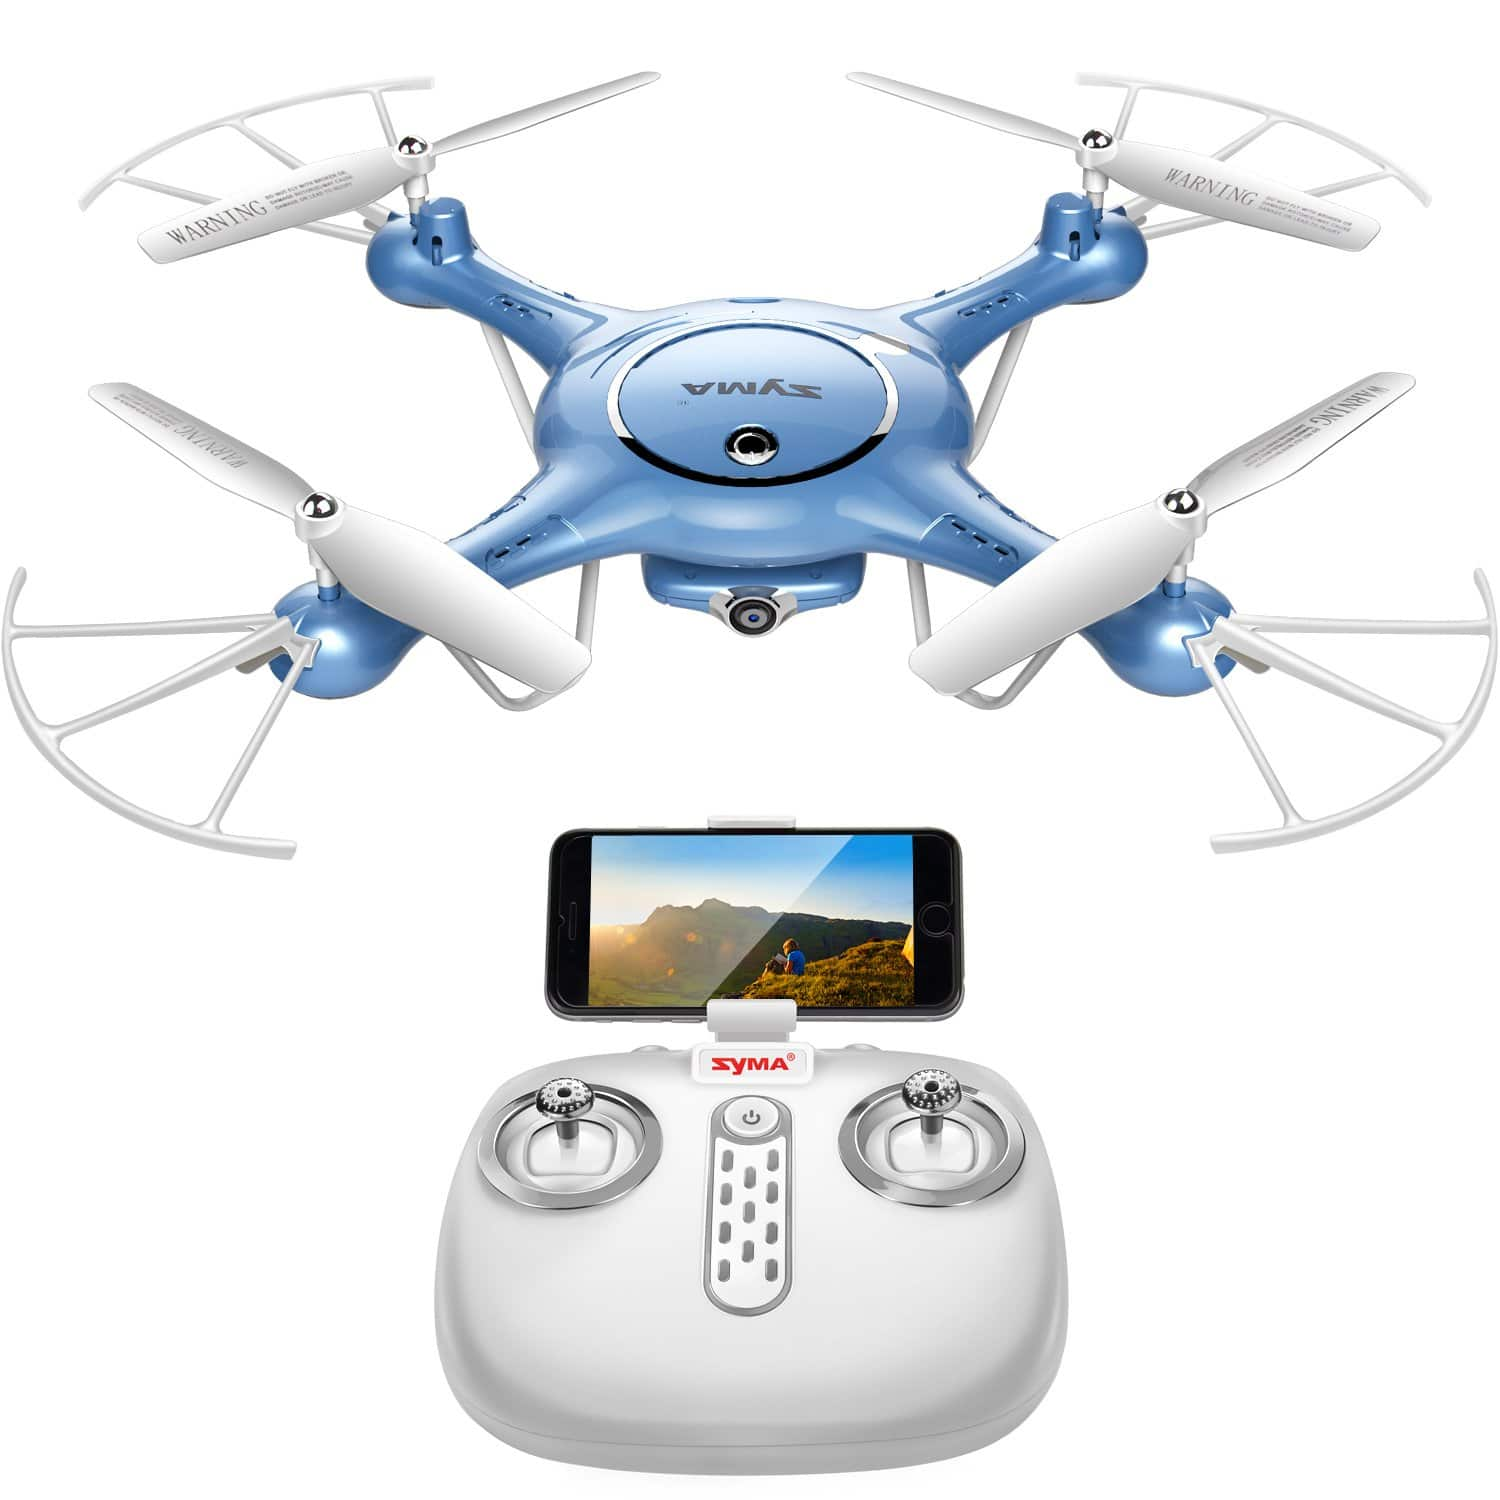 Syma X5UW Drone 720P HD Wi-Fi Camera Live Video + Extra Battery -- $31.65